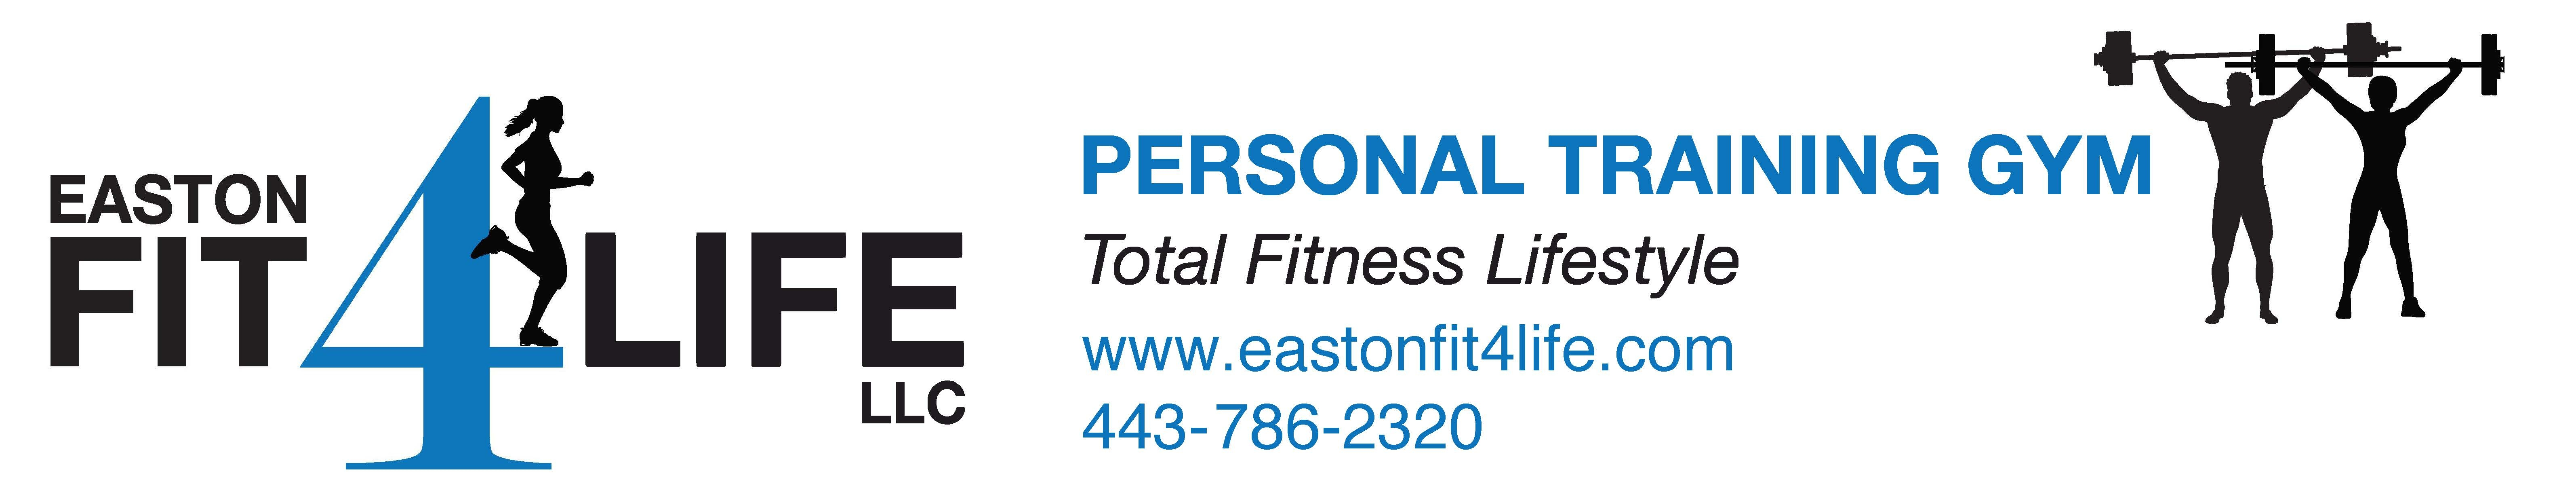 Easton Fit4Life, LLC